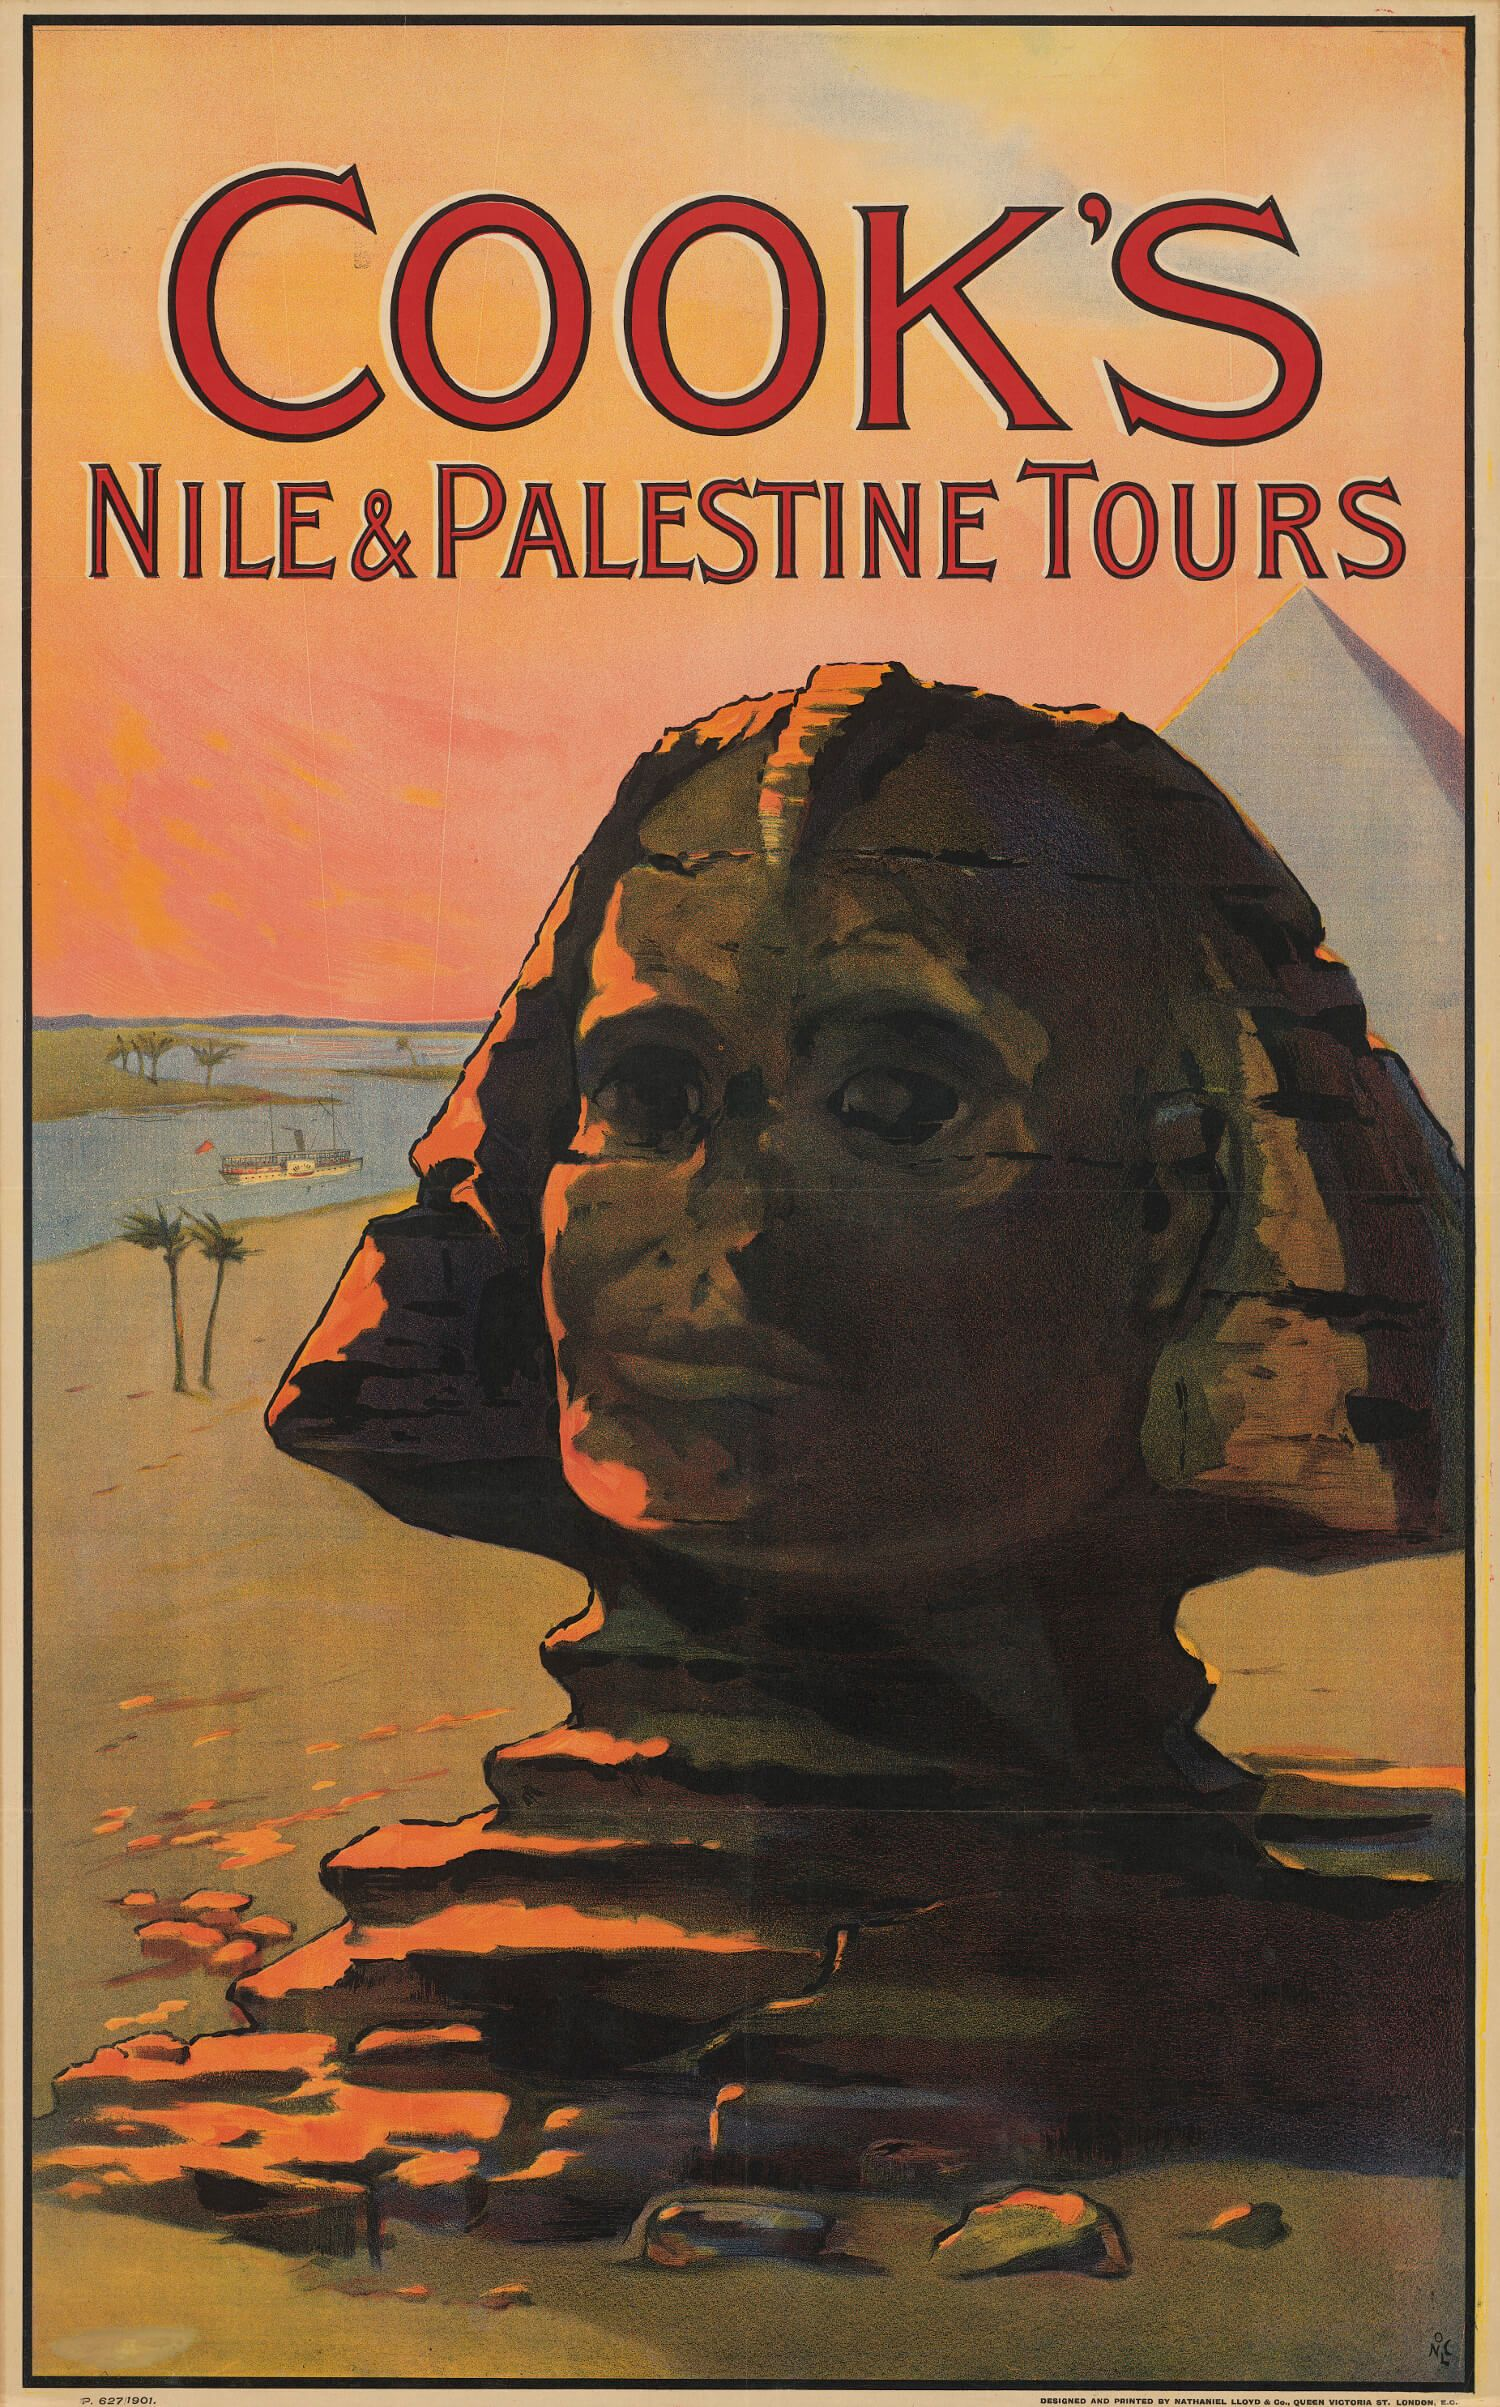 Original 1900 Cook's Travel Poster - Nile & Palestine, with Sphinx